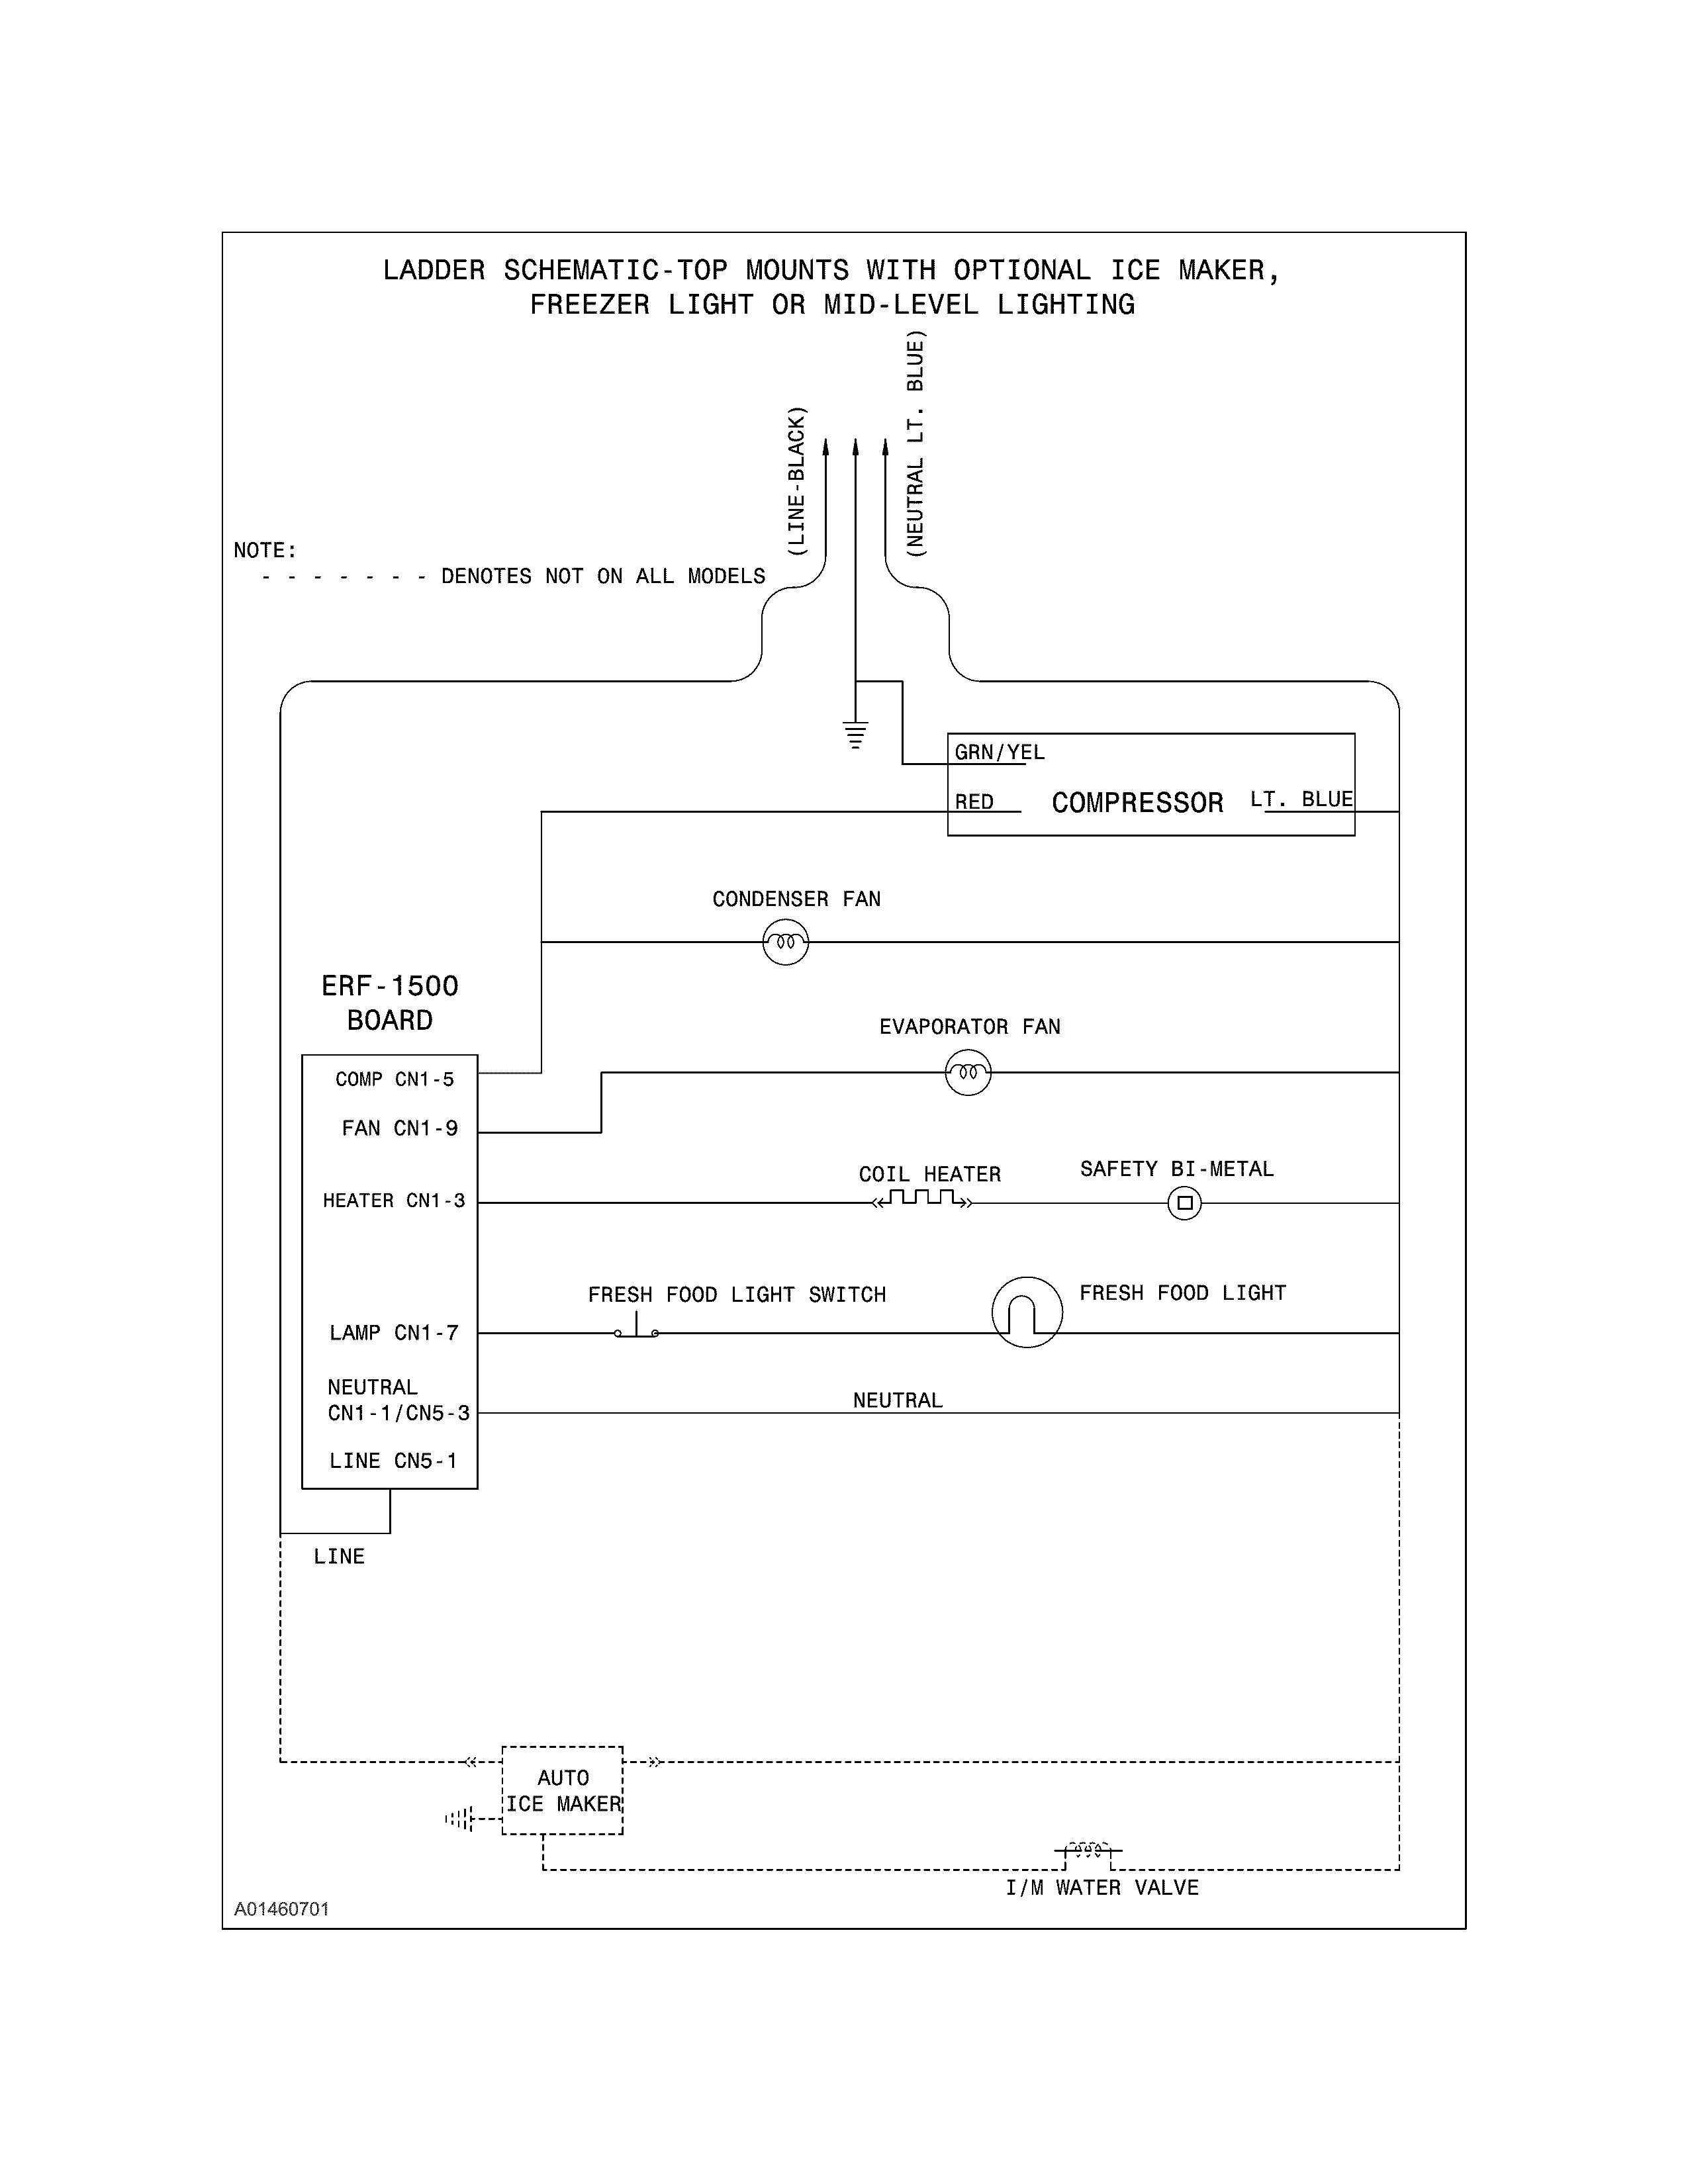 Frigidaire Ice Maker Wiring Diagram from c.searspartsdirect.com